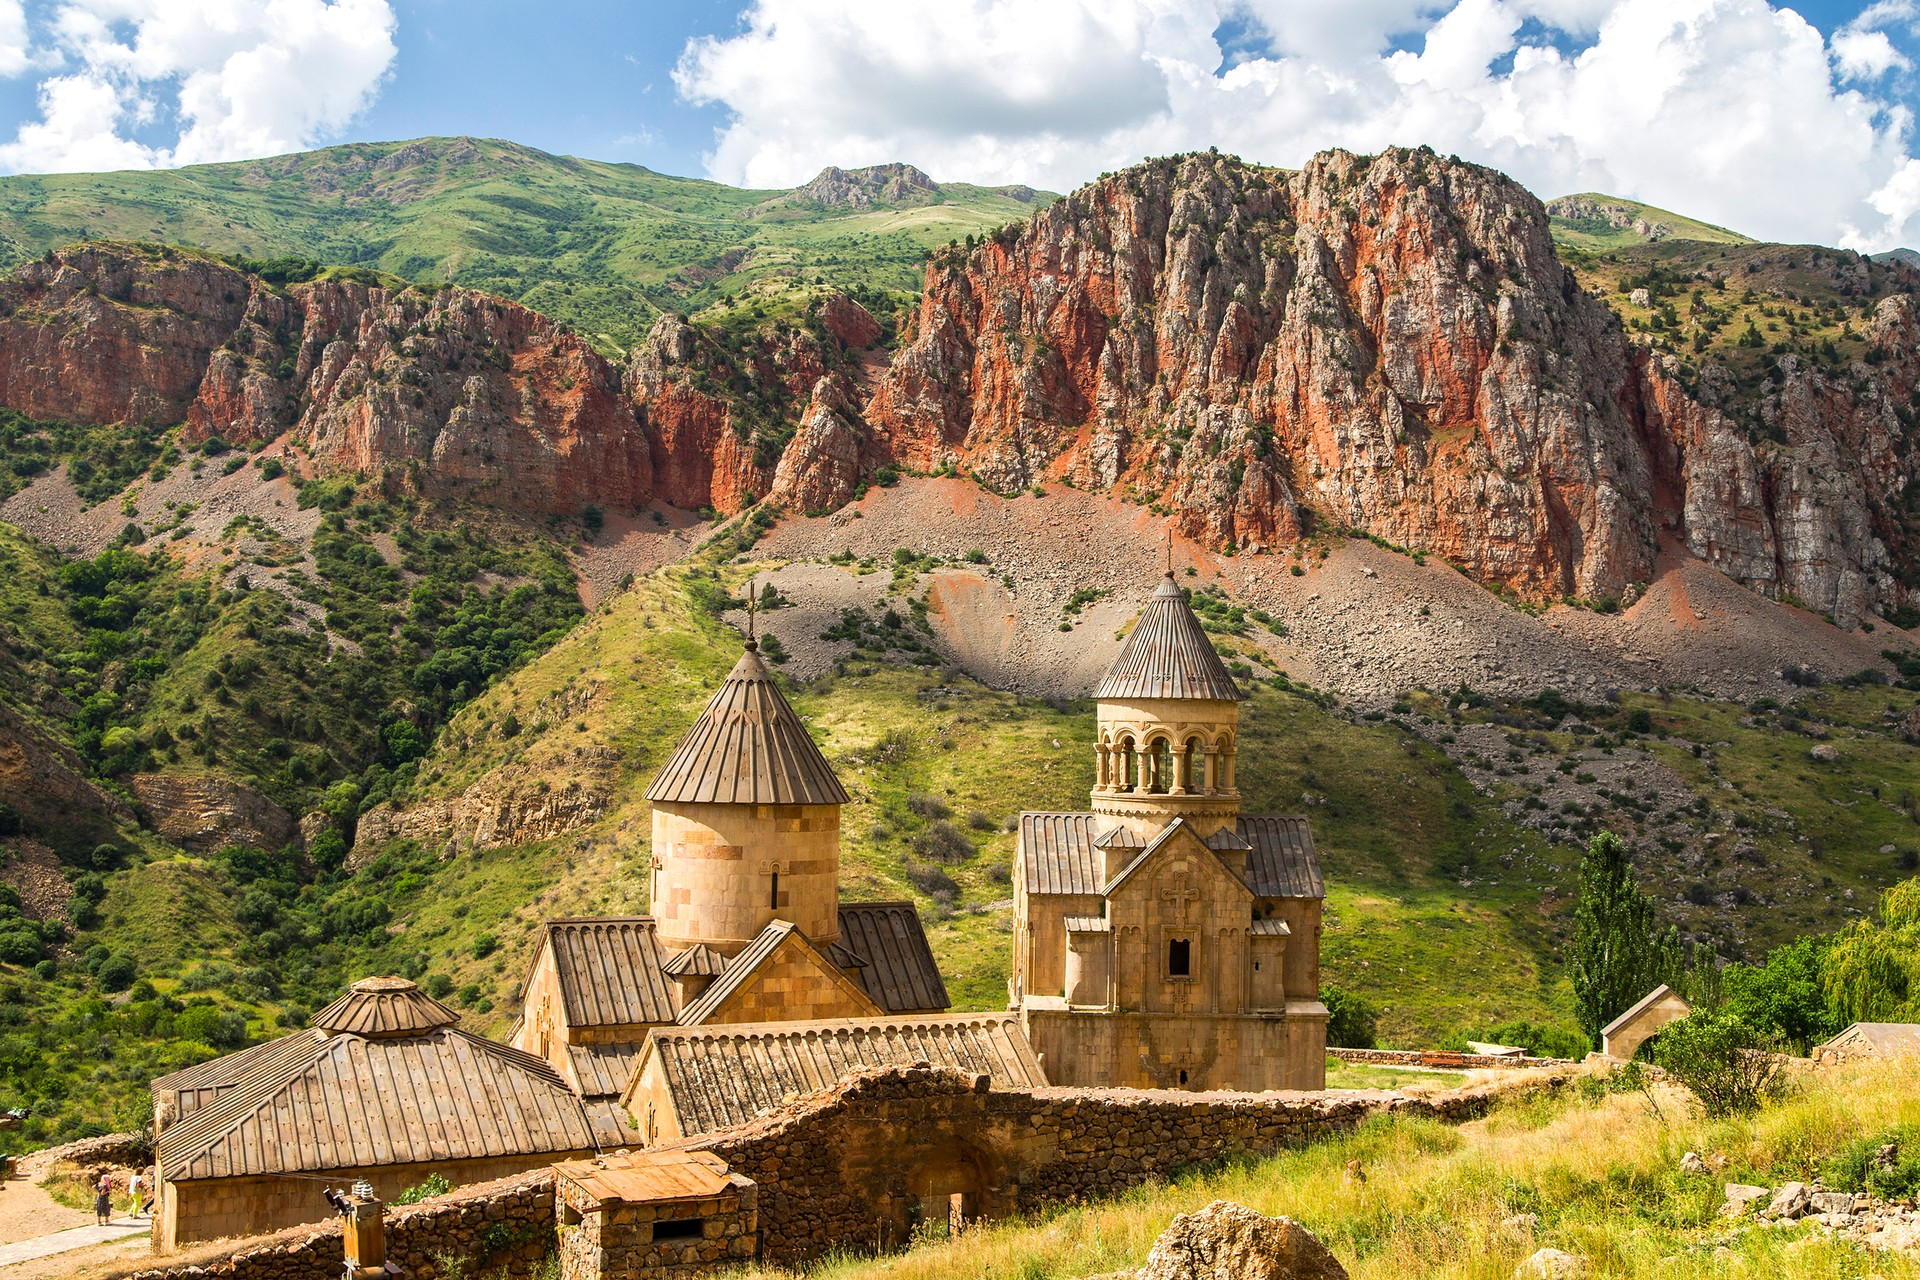 The Noravank Monastery in Armenia